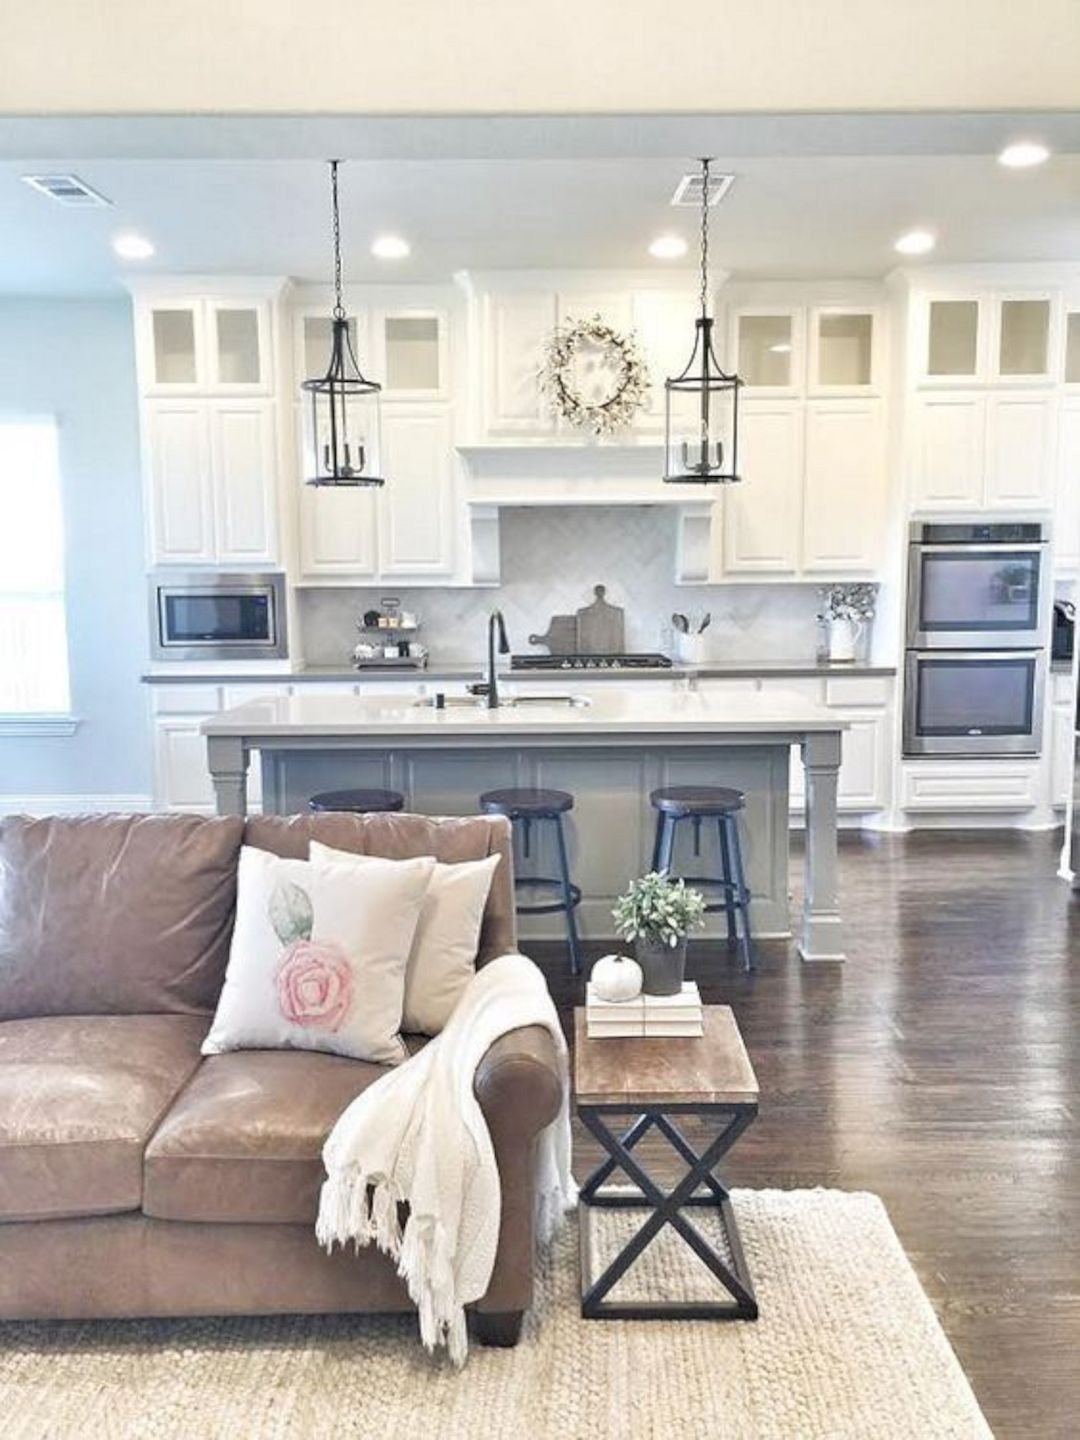 15 Clever Interior Design Ideas on Budget   Clever, Budgeting and ...